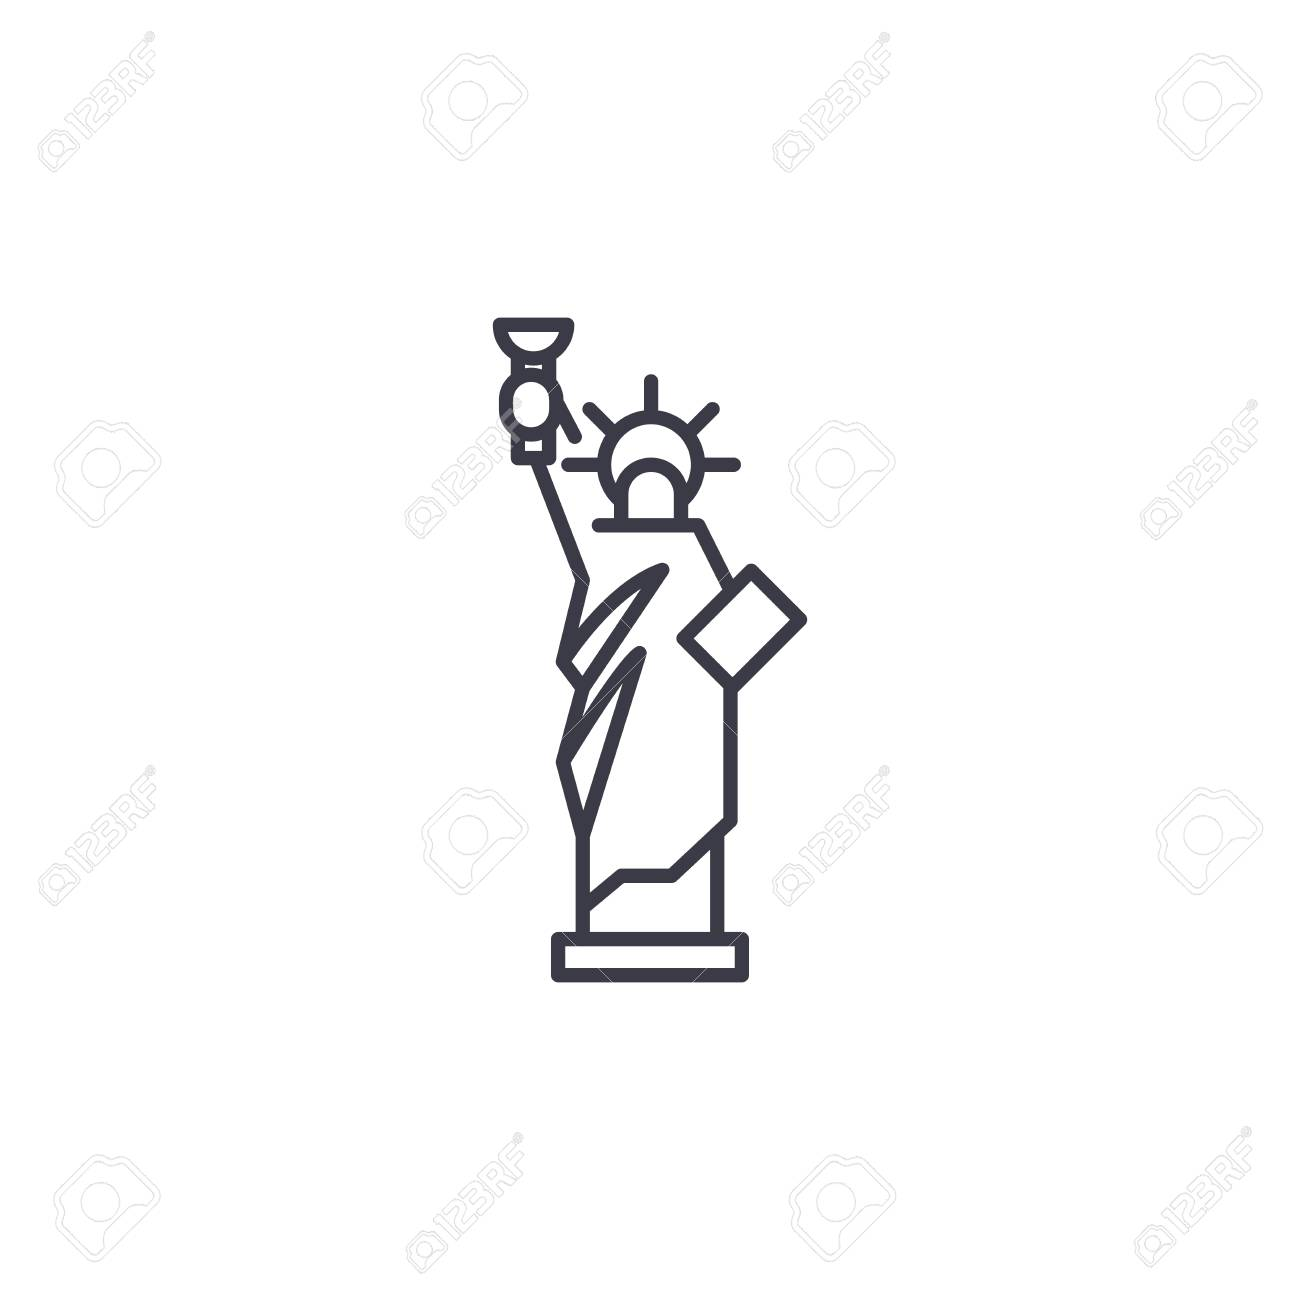 Statue Of Liberty Linear Icon Concept Statue Of Liberty Line Royalty Free Cliparts Vectors And Stock Illustration Image 102427208